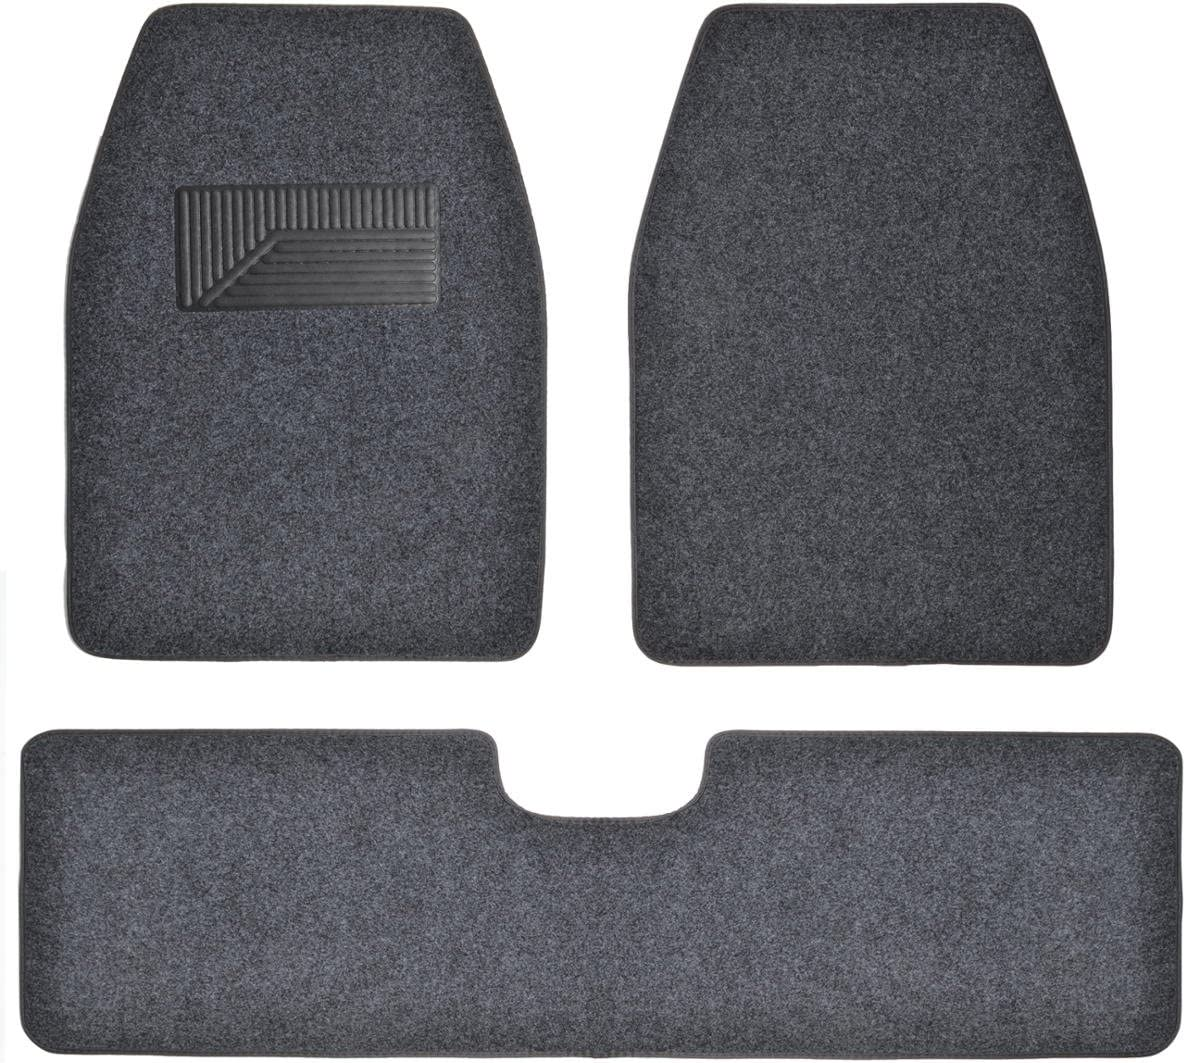 BDK 3 Pieces Heavy Duty Carpet Floor Mats for CAR SUV Van - Extra Thick Carpet with Rubber Backing Multiple Colors (Dark Gray)